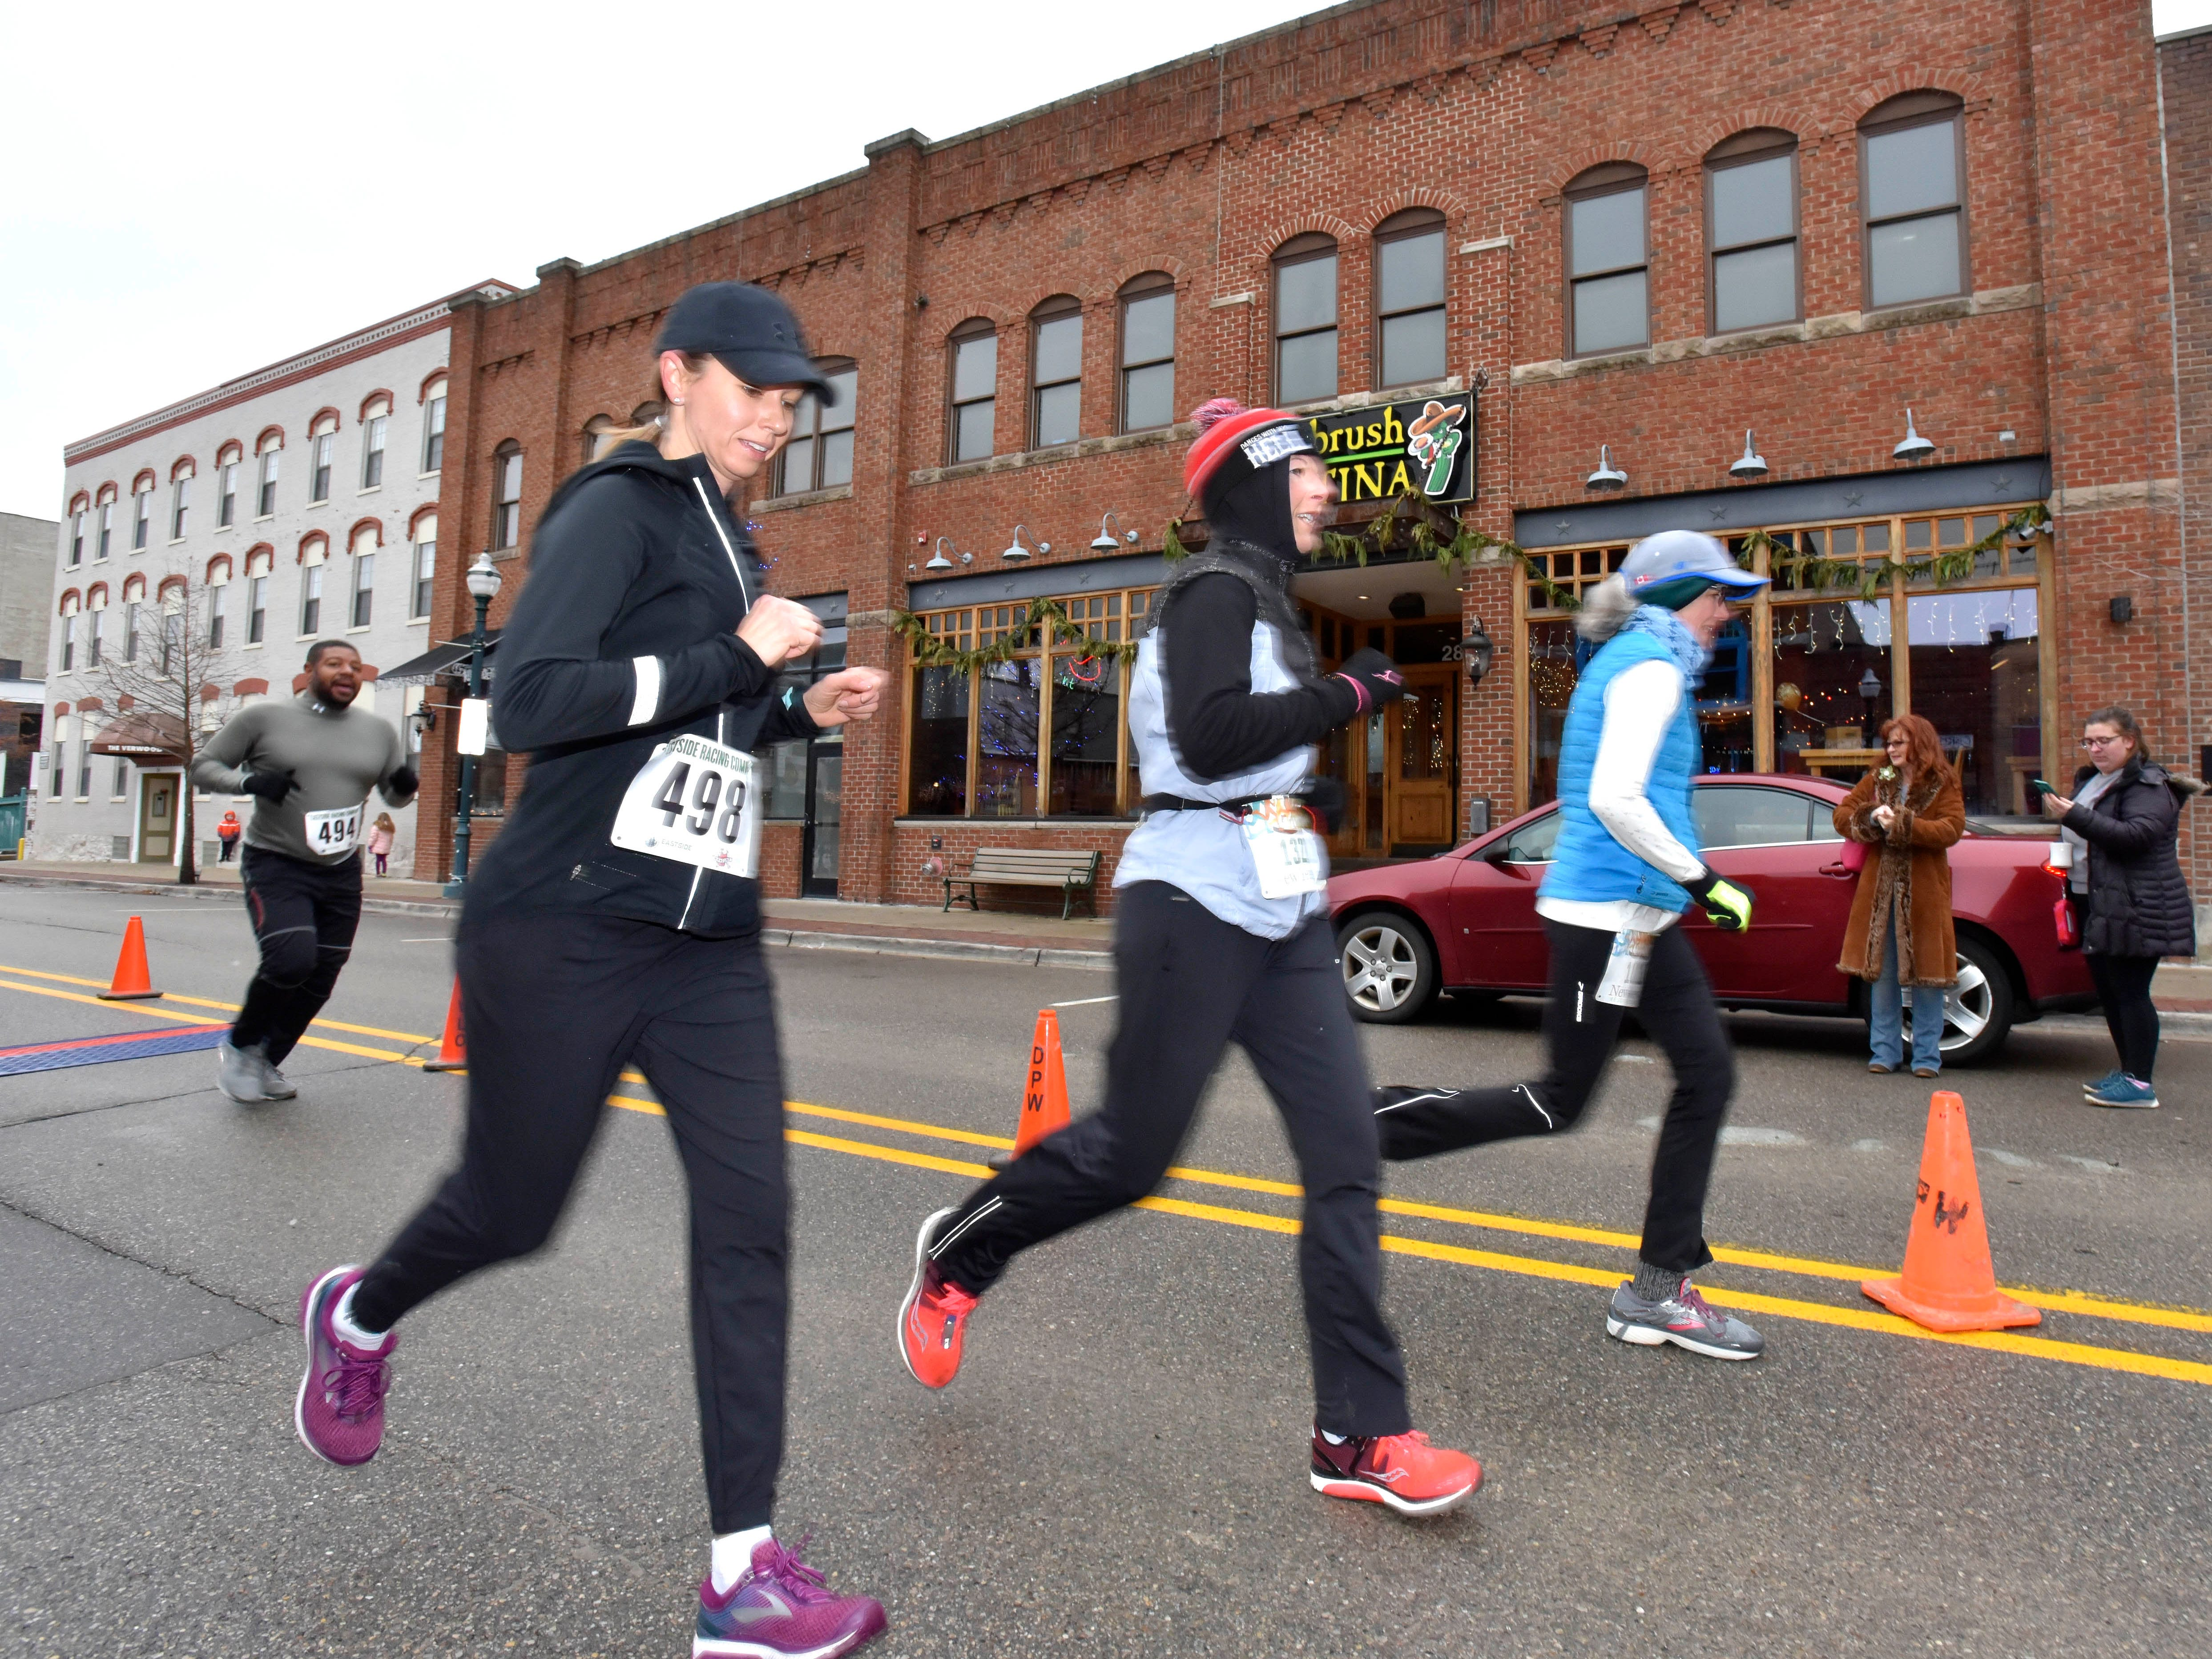 Tracie Kay Hutchinson, left, (498) finishes 12th in females ages 40-49 and 93rd overall as Amber Williamson (132) finishes 11th in females ages 40-49 and 92nd overall while Laura Sawyer (167) finishes 2nd in females ages 60-69 and 83rd overall.